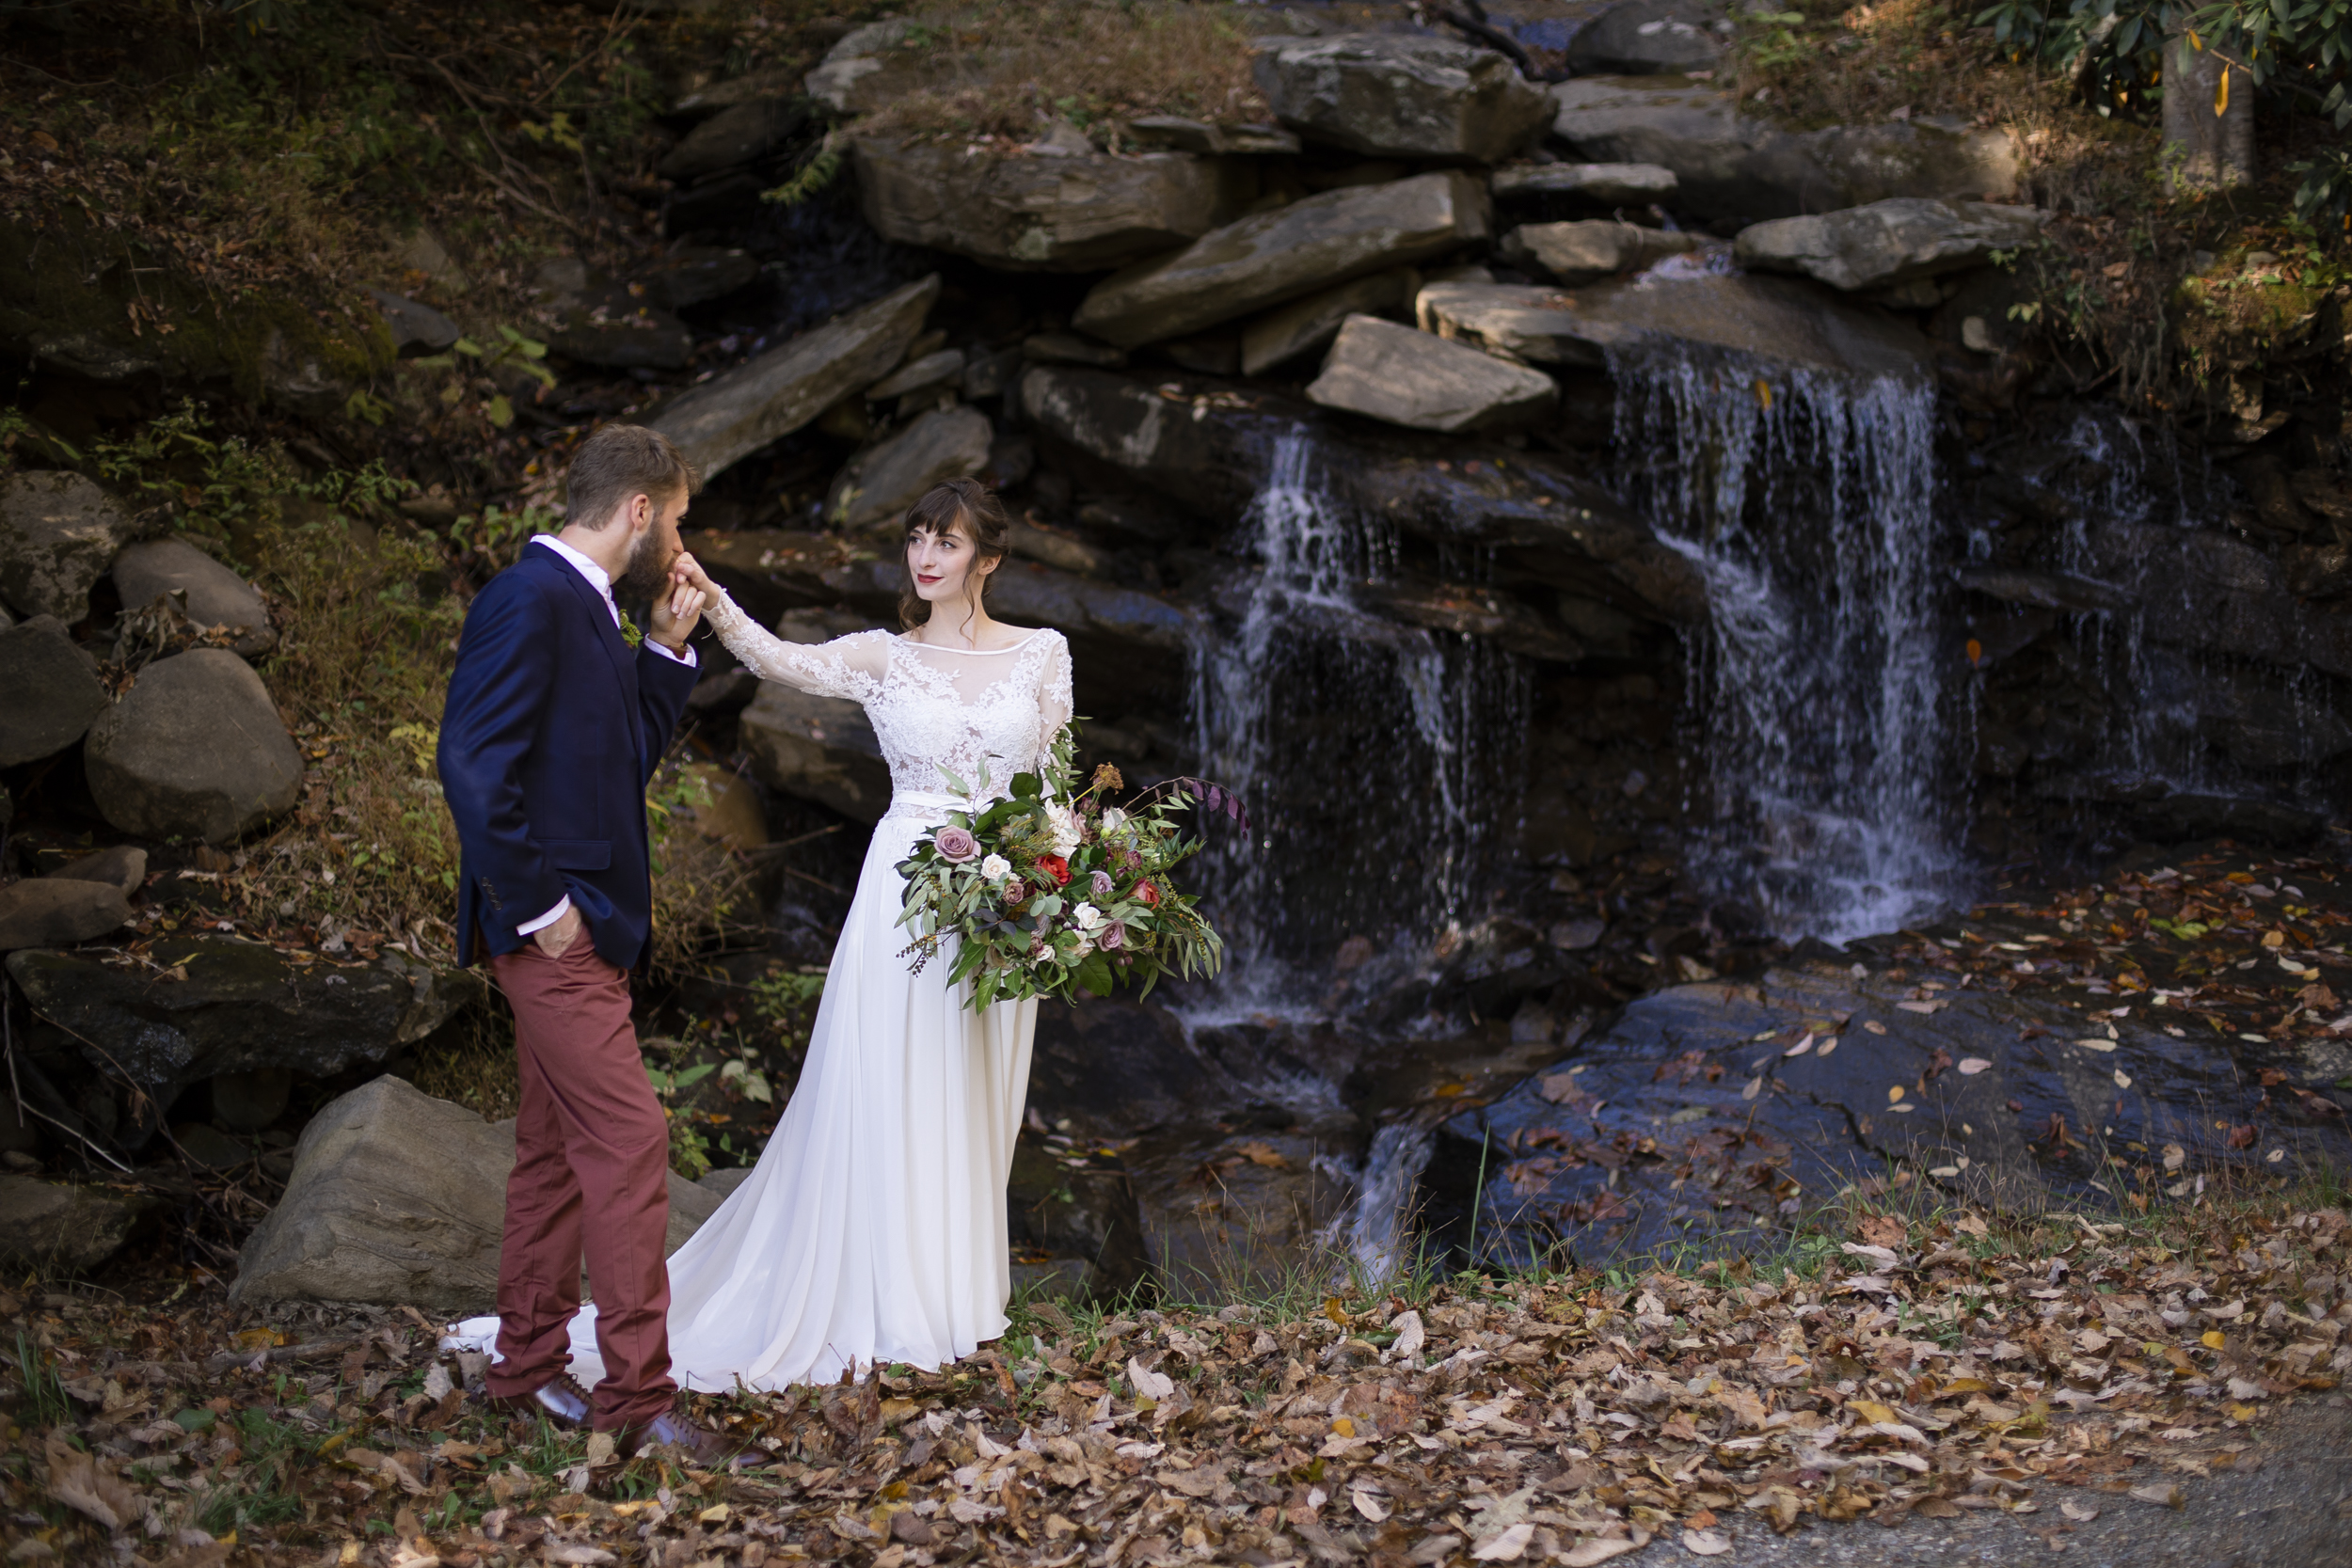 Laurel Falls Wedding October 2018_Allison and Josh__Lola Salon_Flora_Photo by Studio Misha Photography-89.jpg